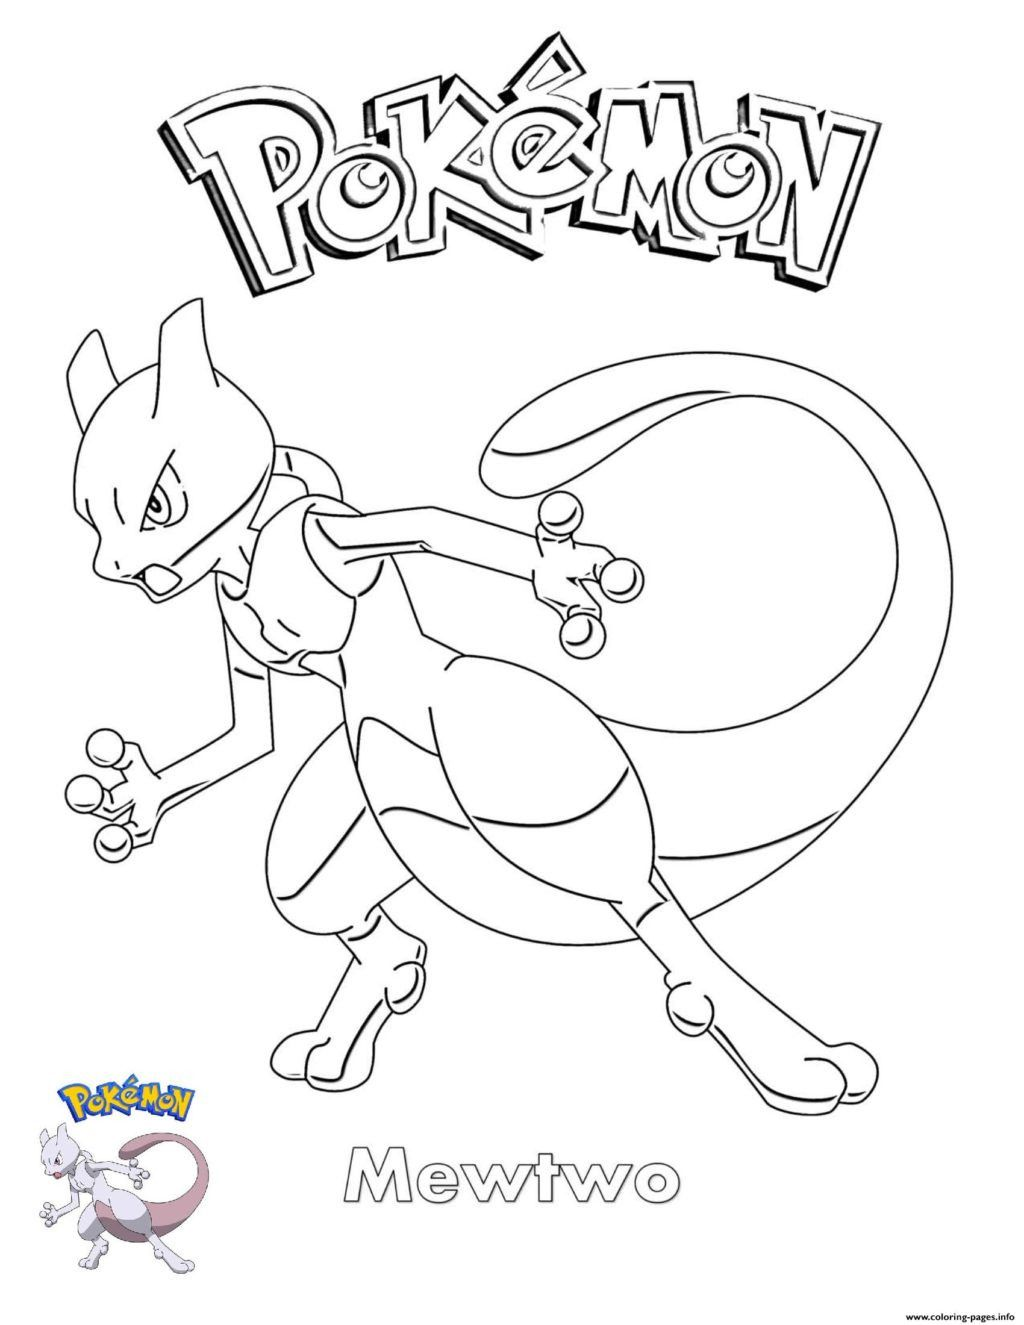 Pokemon Card Coloring Page Youngandtae Com Pokemon Coloring Pokemon Coloring Pages Puppy Coloring Pages